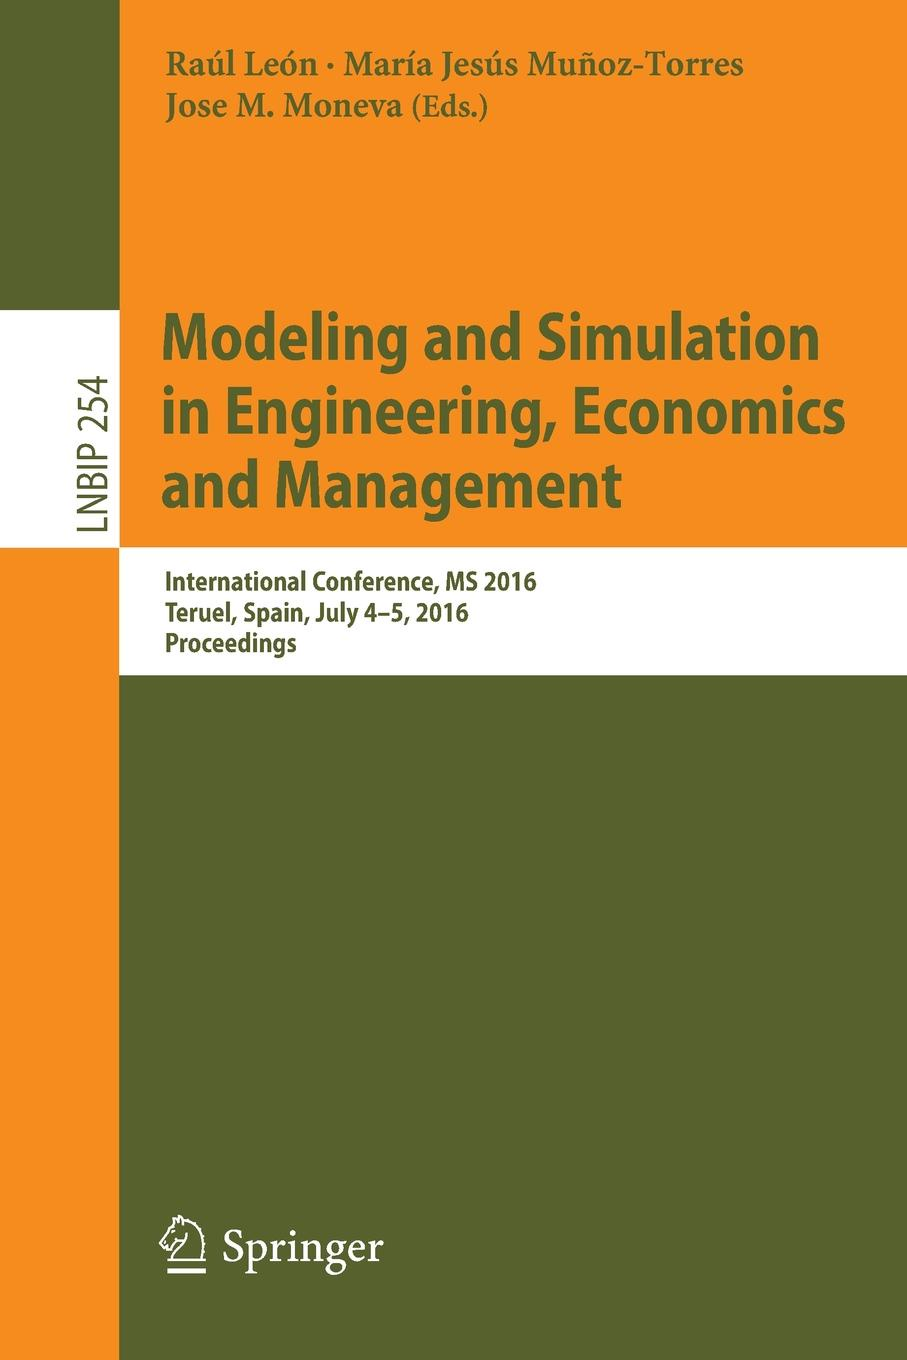 Modeling and Simulation in Engineering, Economics and Management. International Conference, MS 2016, Teruel, Spain, July 4-5, 2016, Proceedings andreas tolk engineering principles of combat modeling and distributed simulation